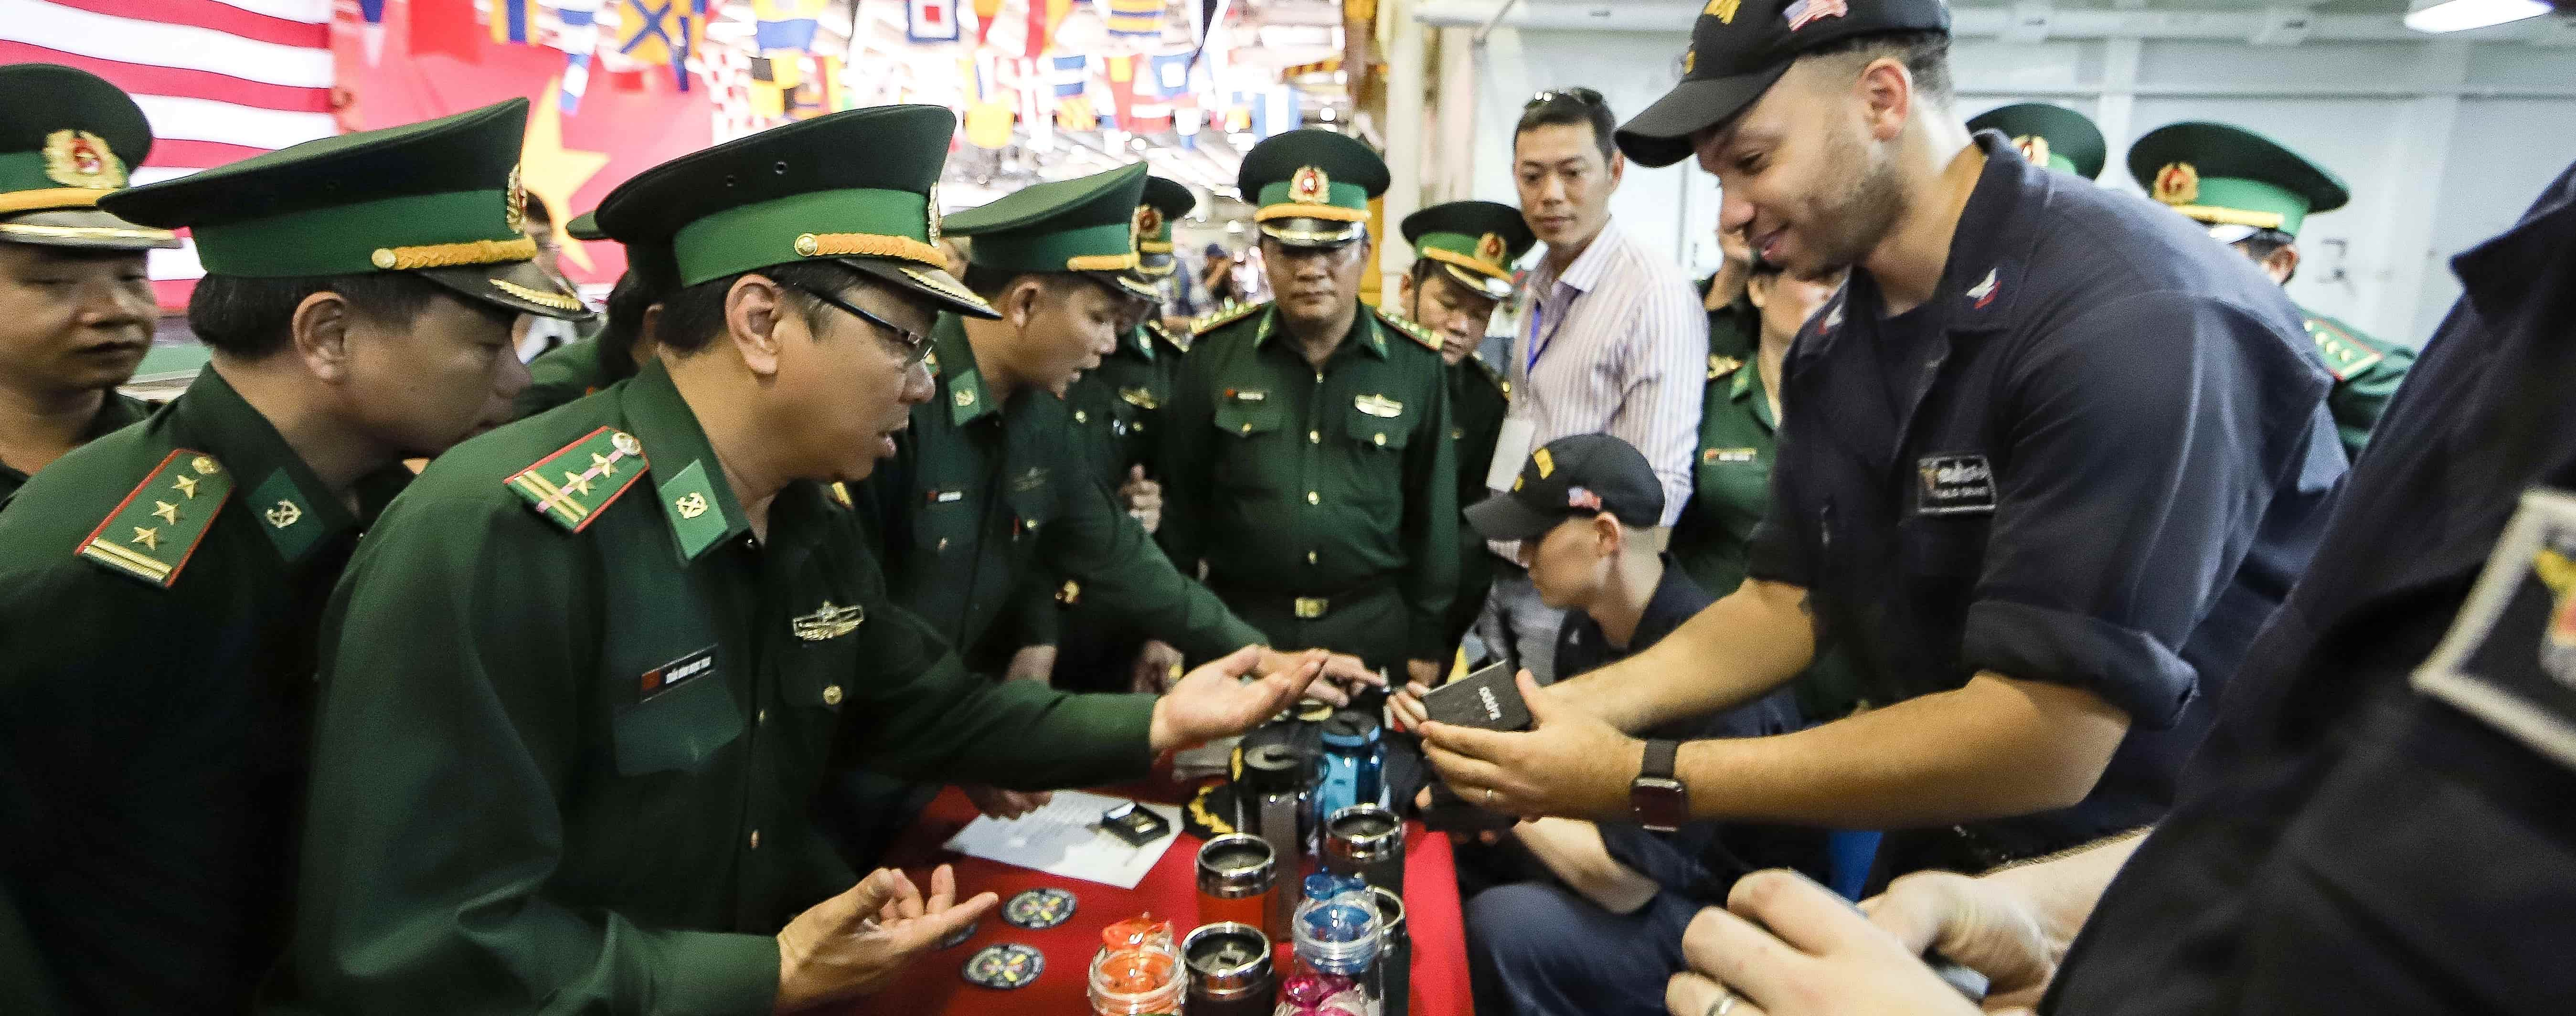 Vietnamese military officers aboard the USS Carl Vinson. (Photo: Getty Images)